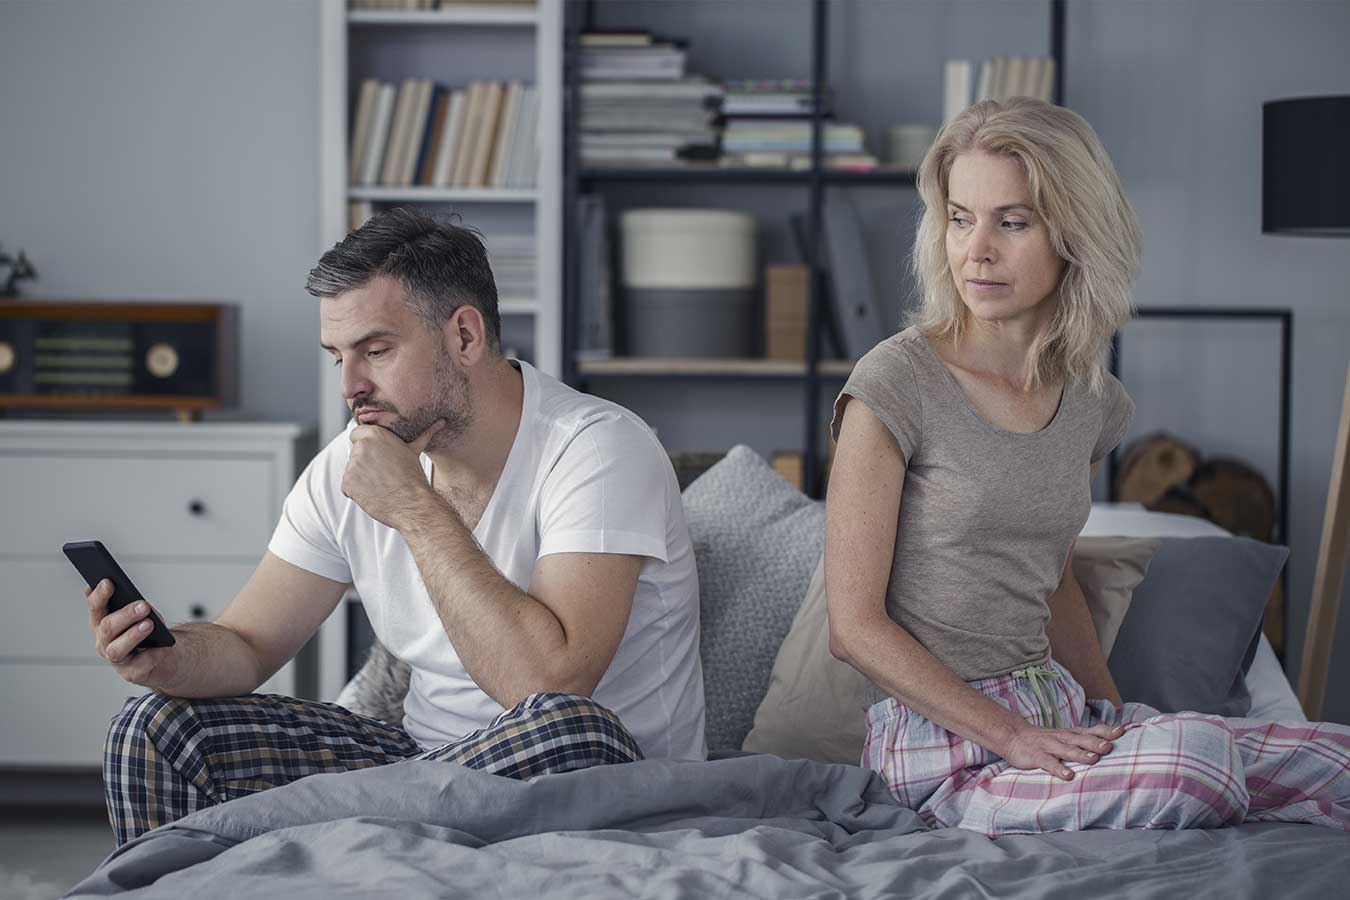 Suspect Infidelity? You're NOT Alone